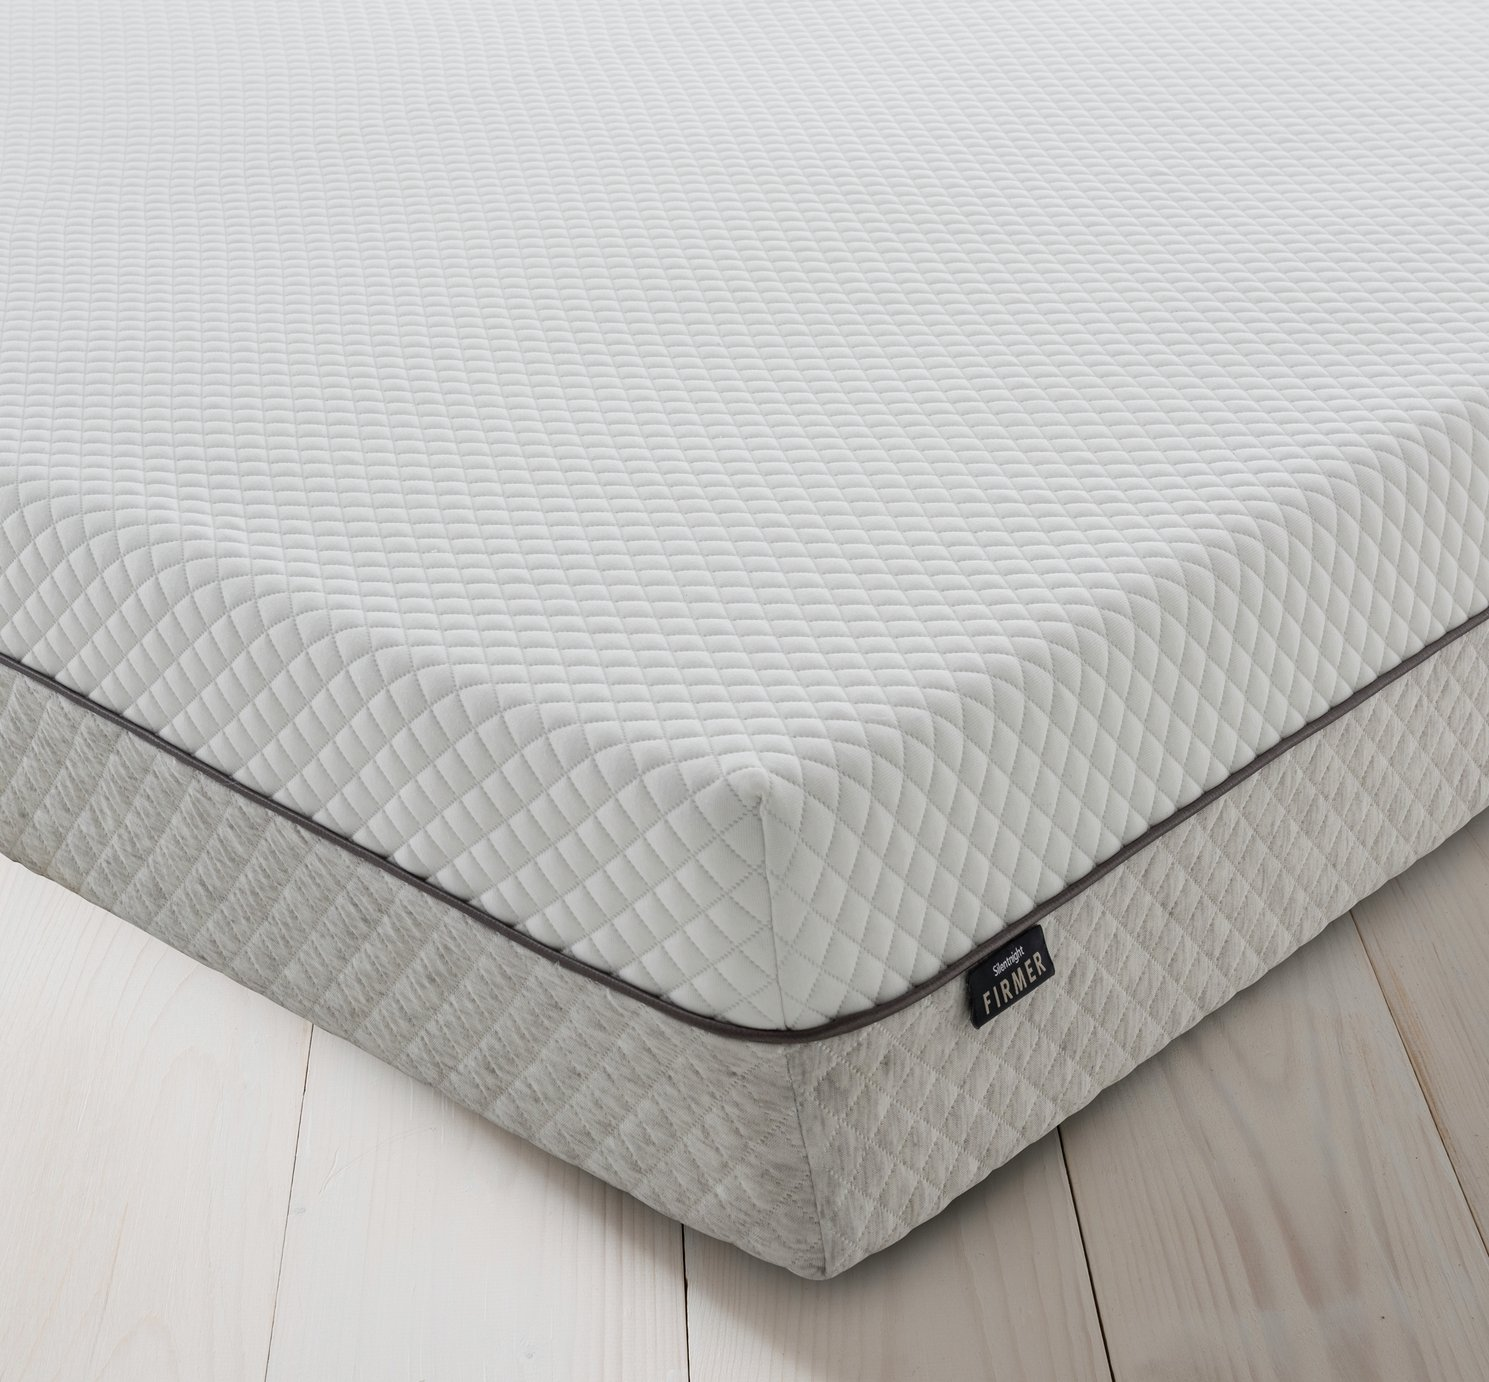 Silentnight Dual Comfort Single Mattress